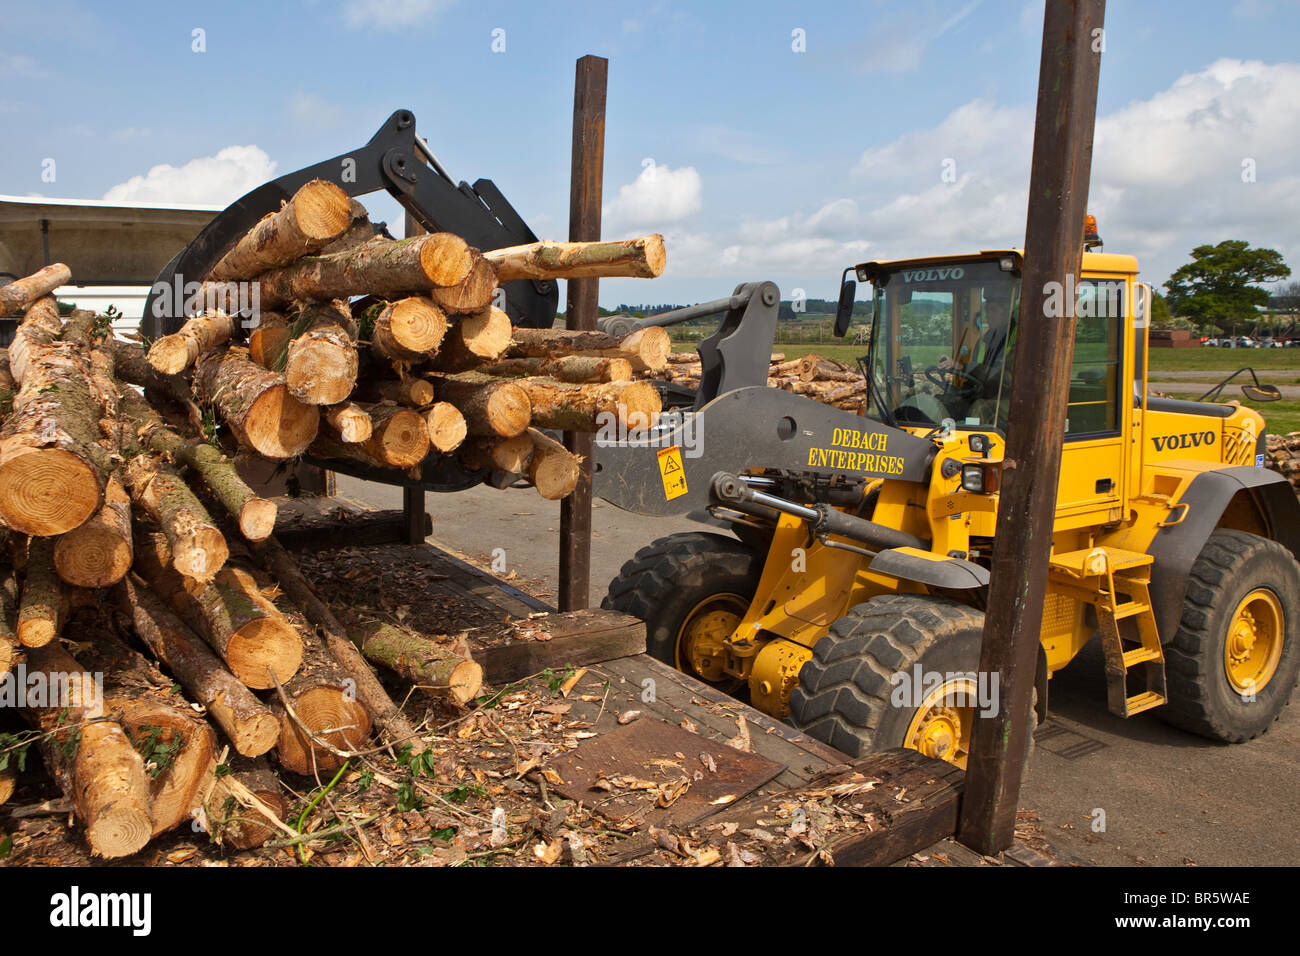 Freshly cut trees from sustainable woodland are stacked to dry out before being turned into chippings. - Stock Image